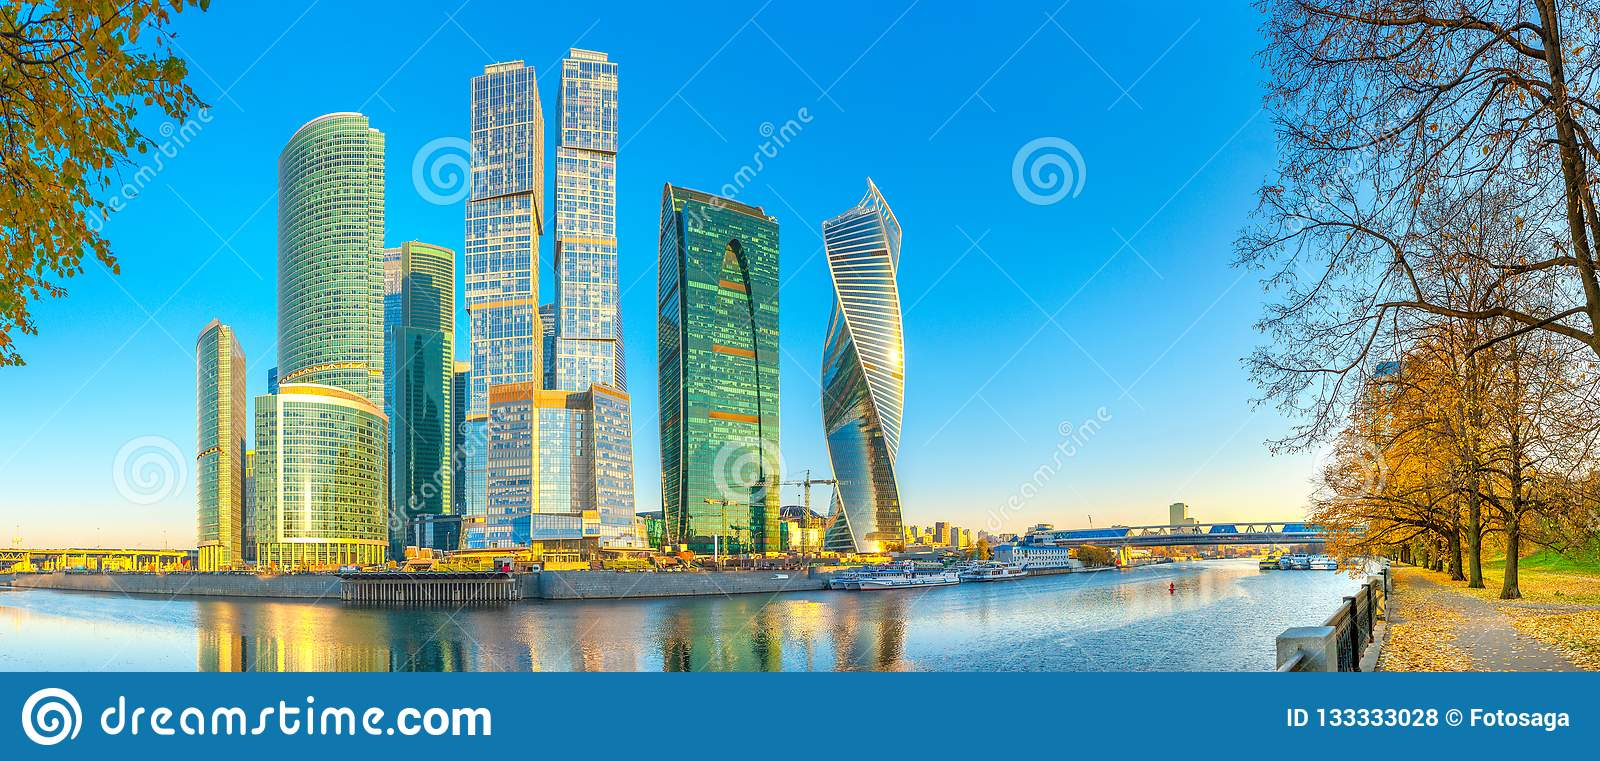 Panorama of the skyscrapers of the business center of Moscow from the embankment of the Moskva River